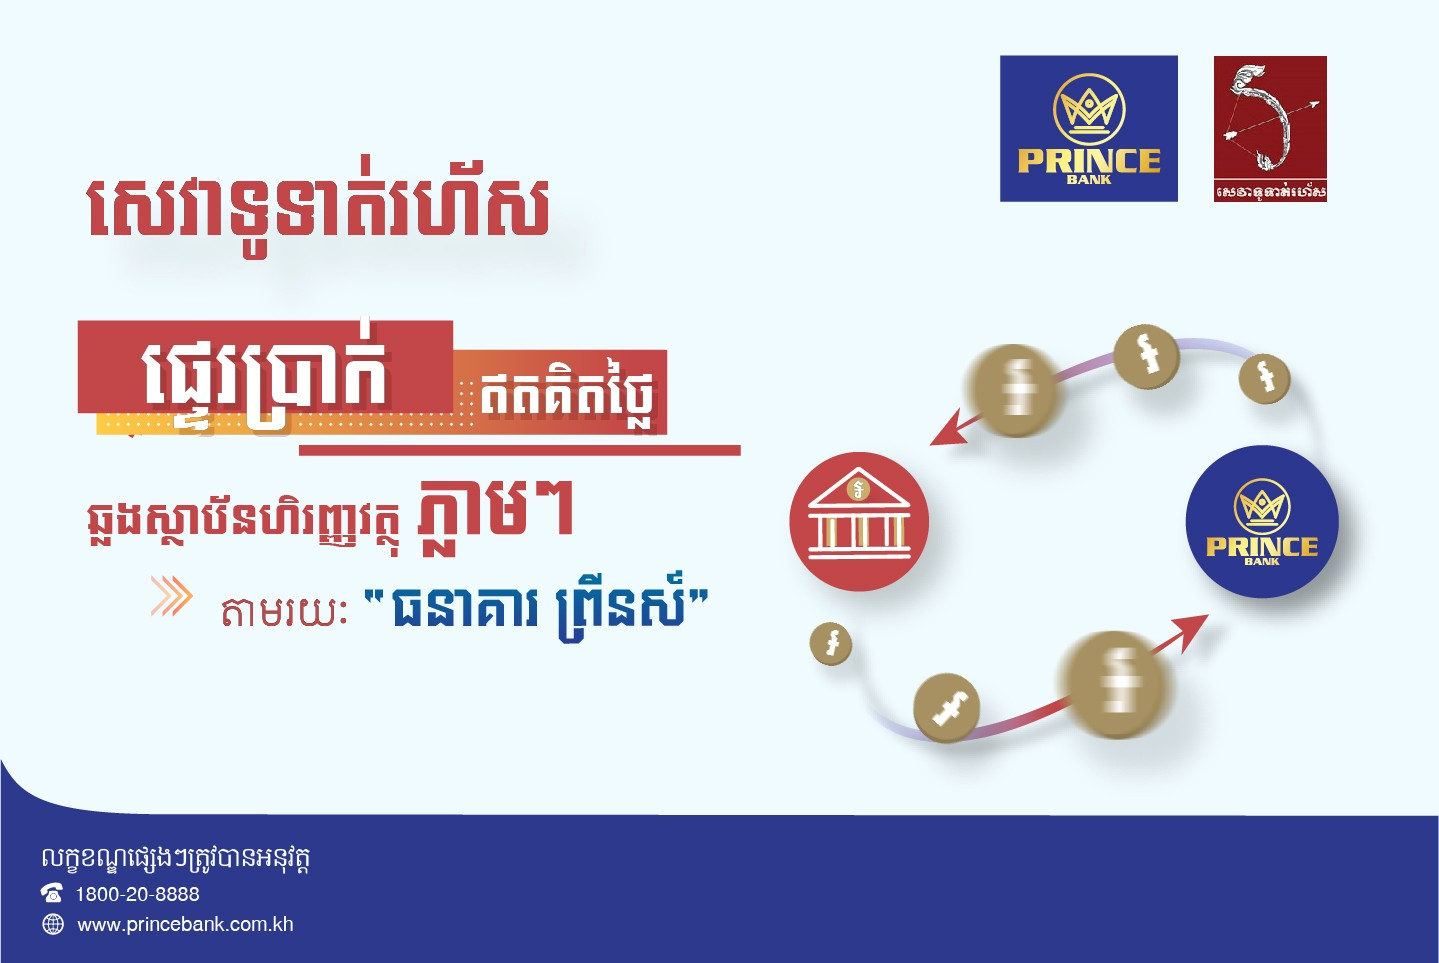 NBC's Fast Payment Service Is Available At Prince Bank